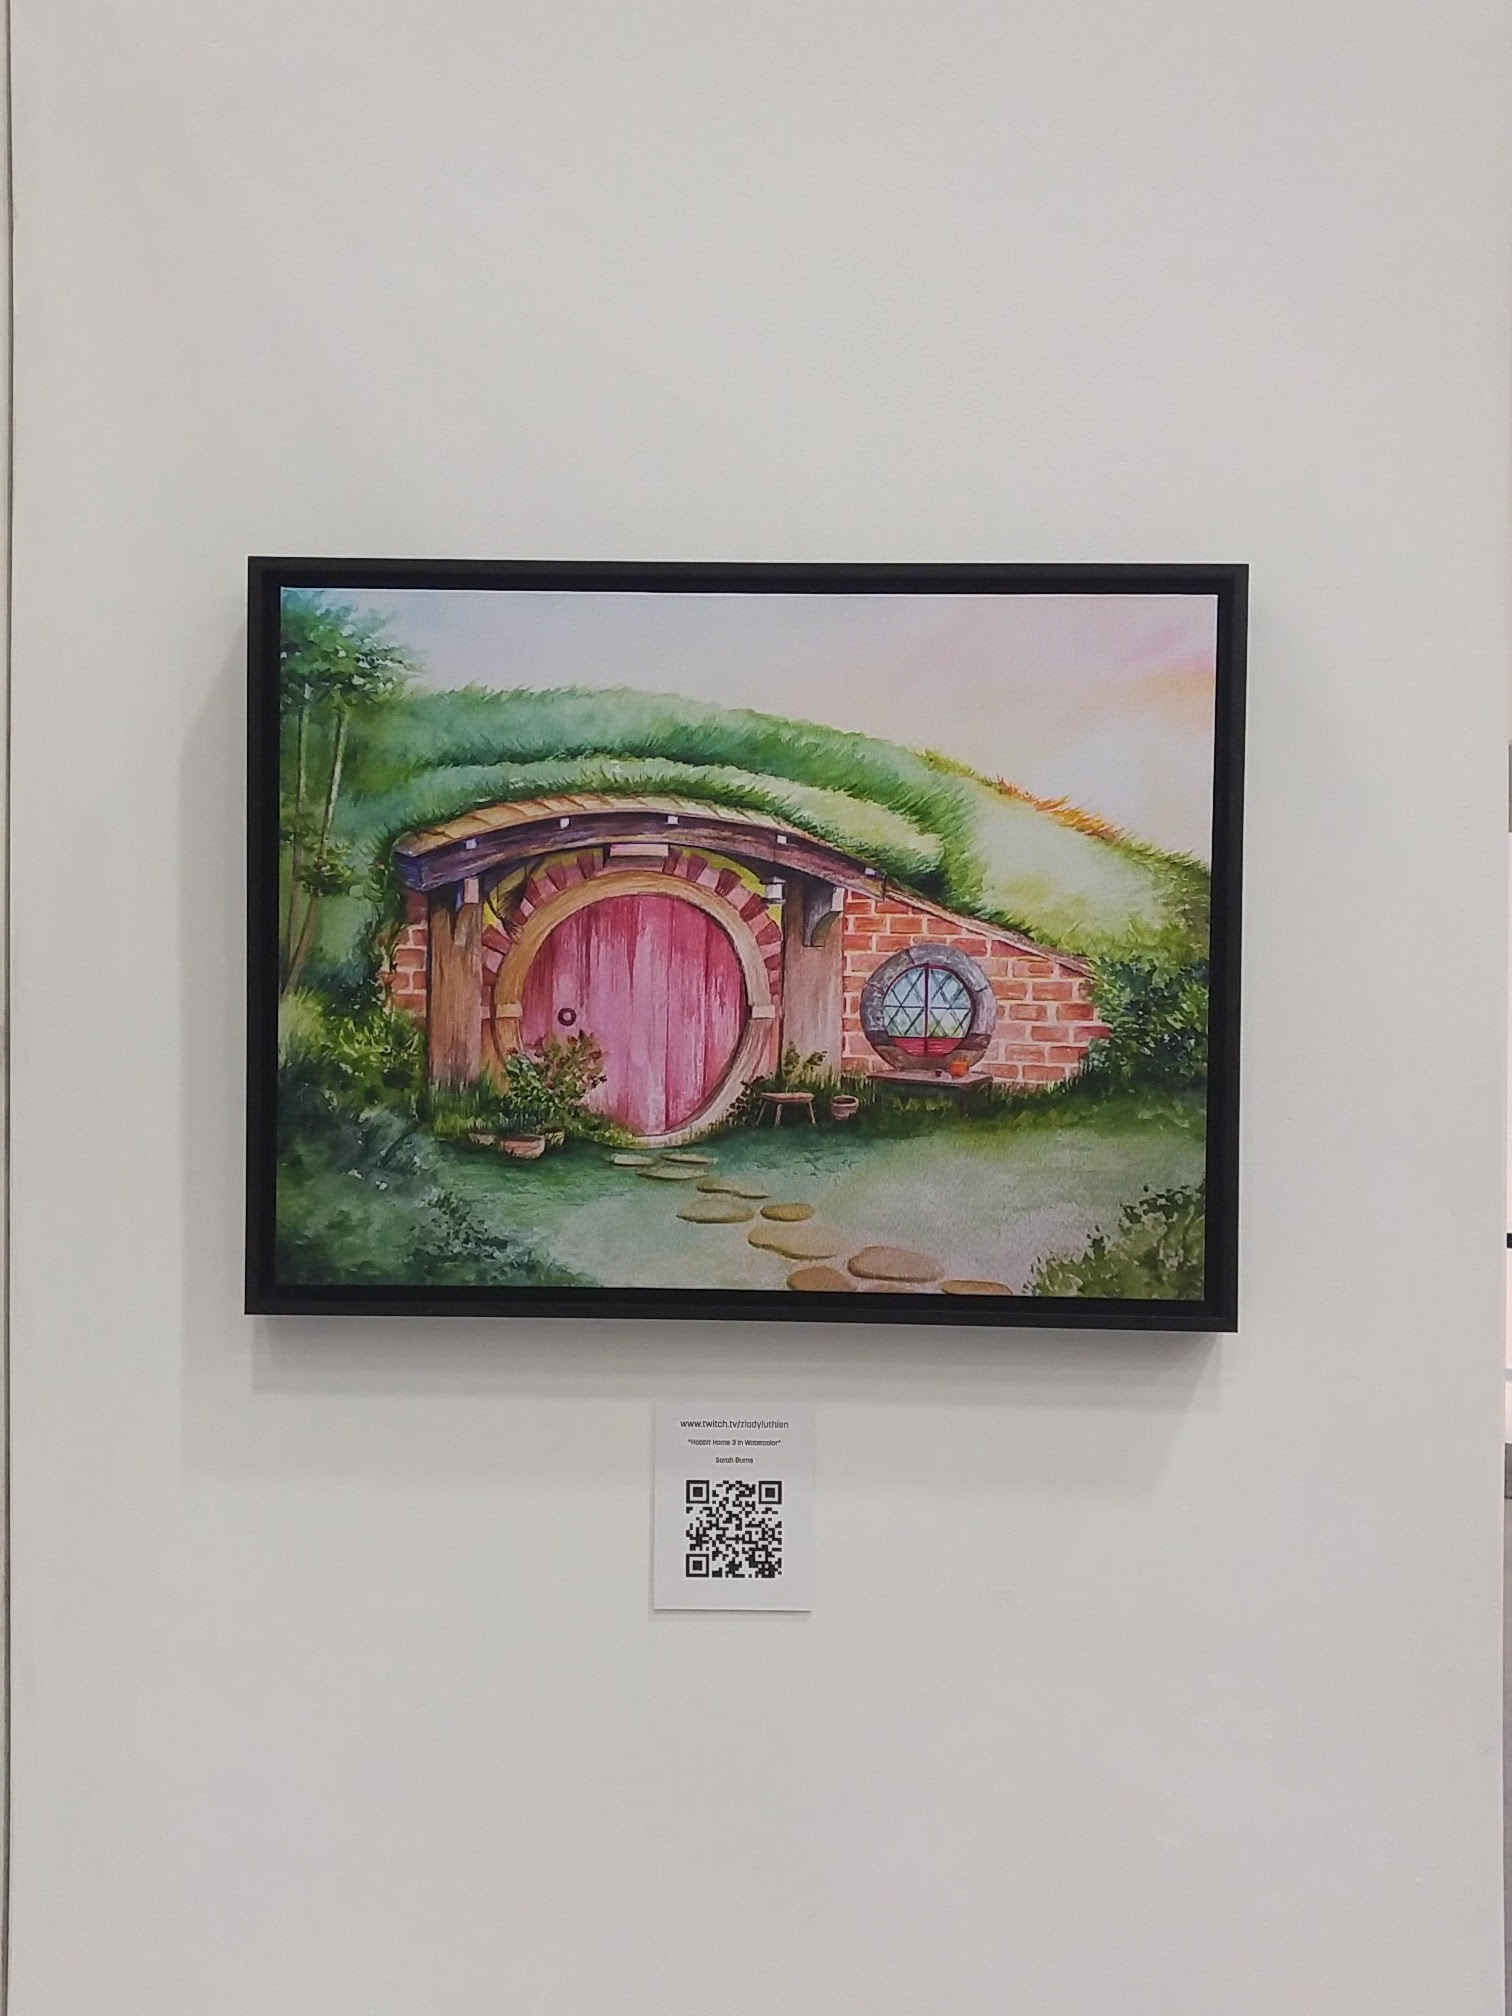 My painting hanging in the Gallery (woo!)